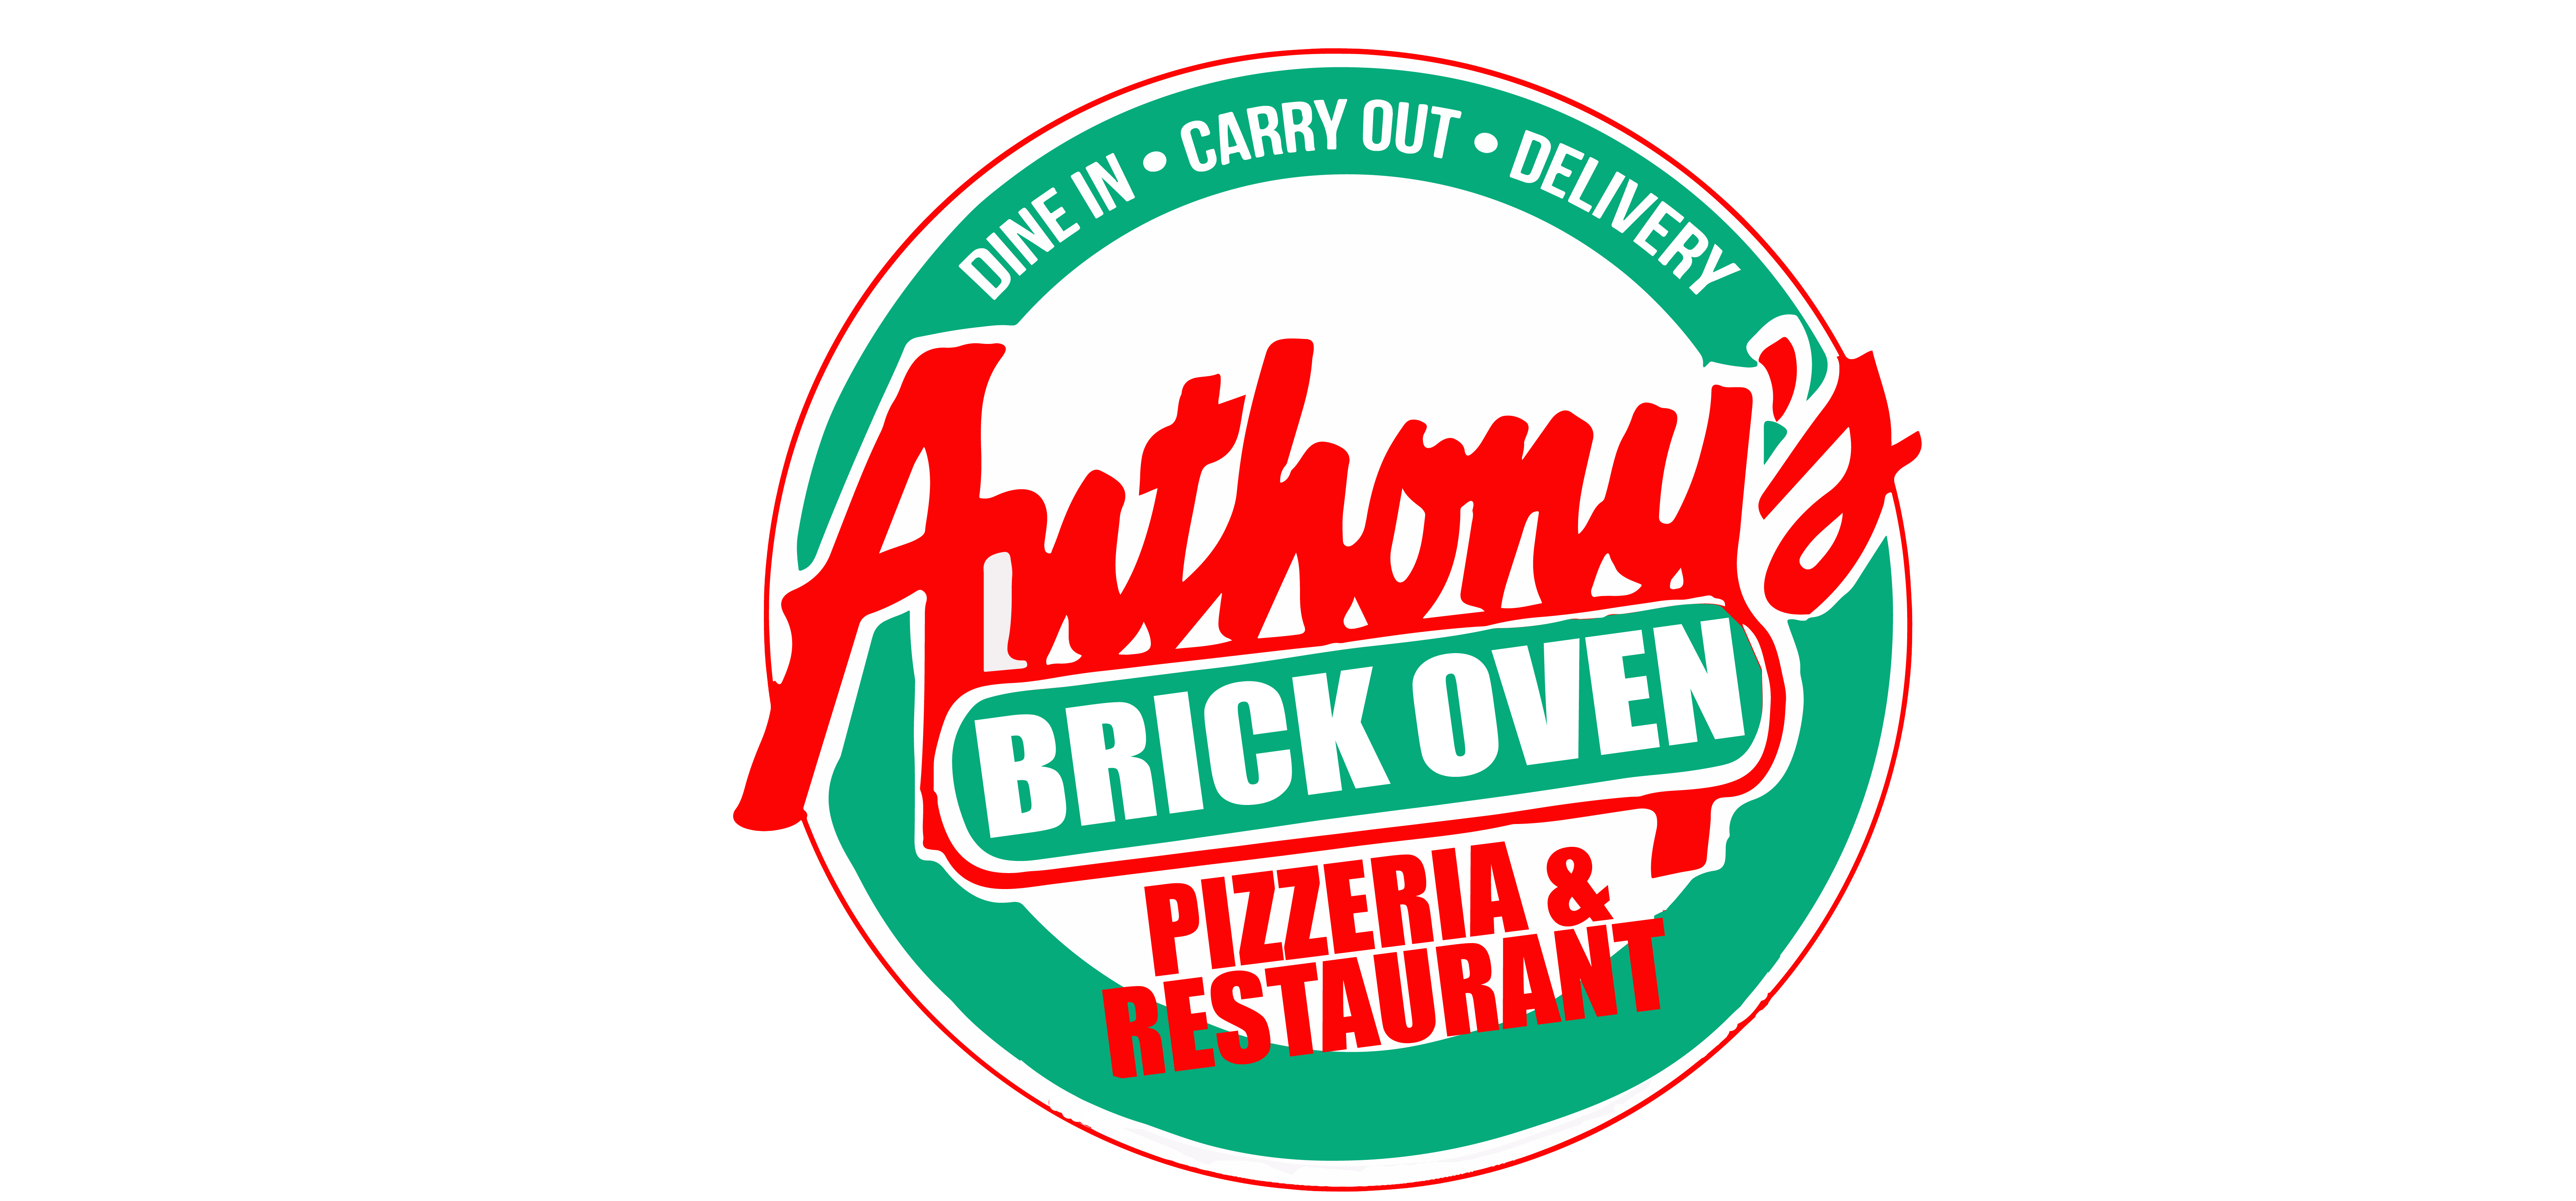 Anthonys pizza menu . Pasta clipart baked ziti